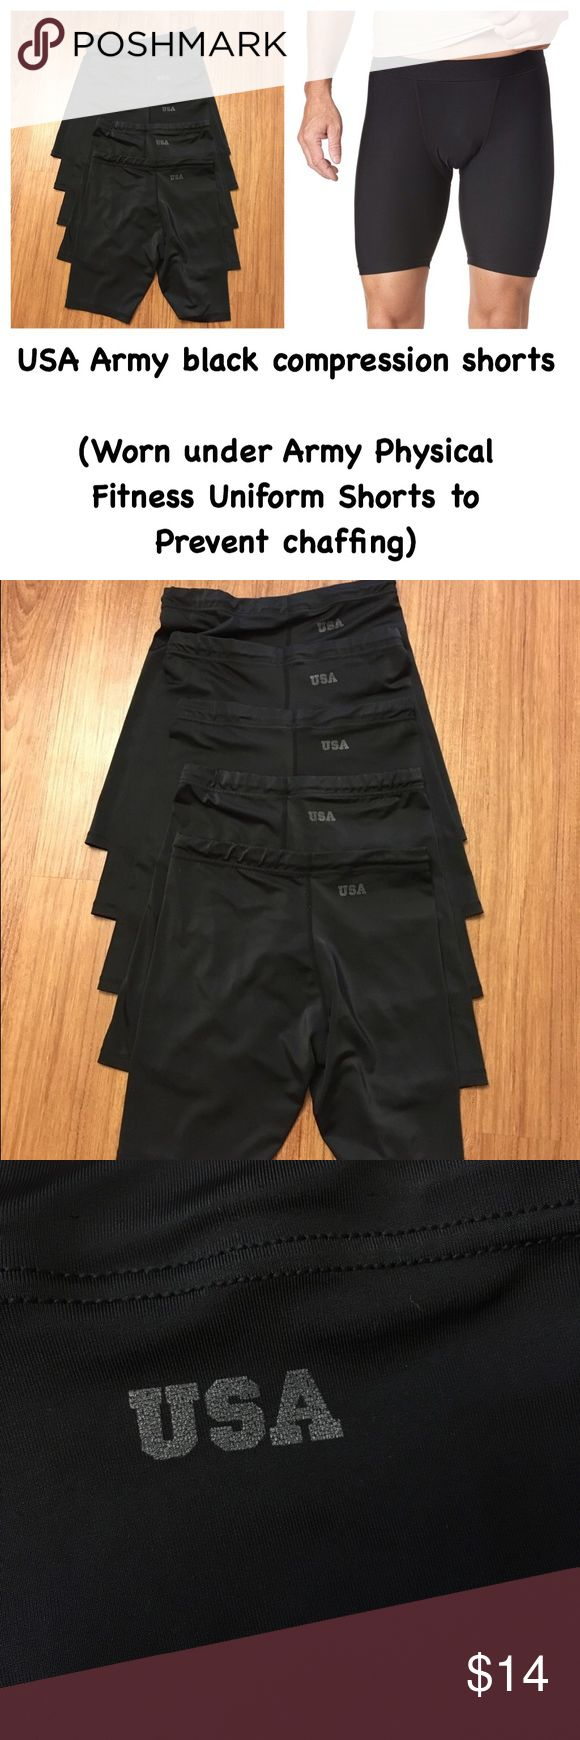 USA Army black PT compression shorts: all size L 📦Same day shipping (as long as P.O. is open for business). ❤ Measurements are approximate. Descriptions are accurate to the best of my knowledge.  Price is for 1 pair. I have 4 left. These shorts are traditionally worn under the Army physical fitness shorts to prevent chaffing/ridding. They are all size large: synthetic stretch blend. No material tags. All are stamped with the USA logo. No holes/stains. Smoke/pet free. Model photo only to…